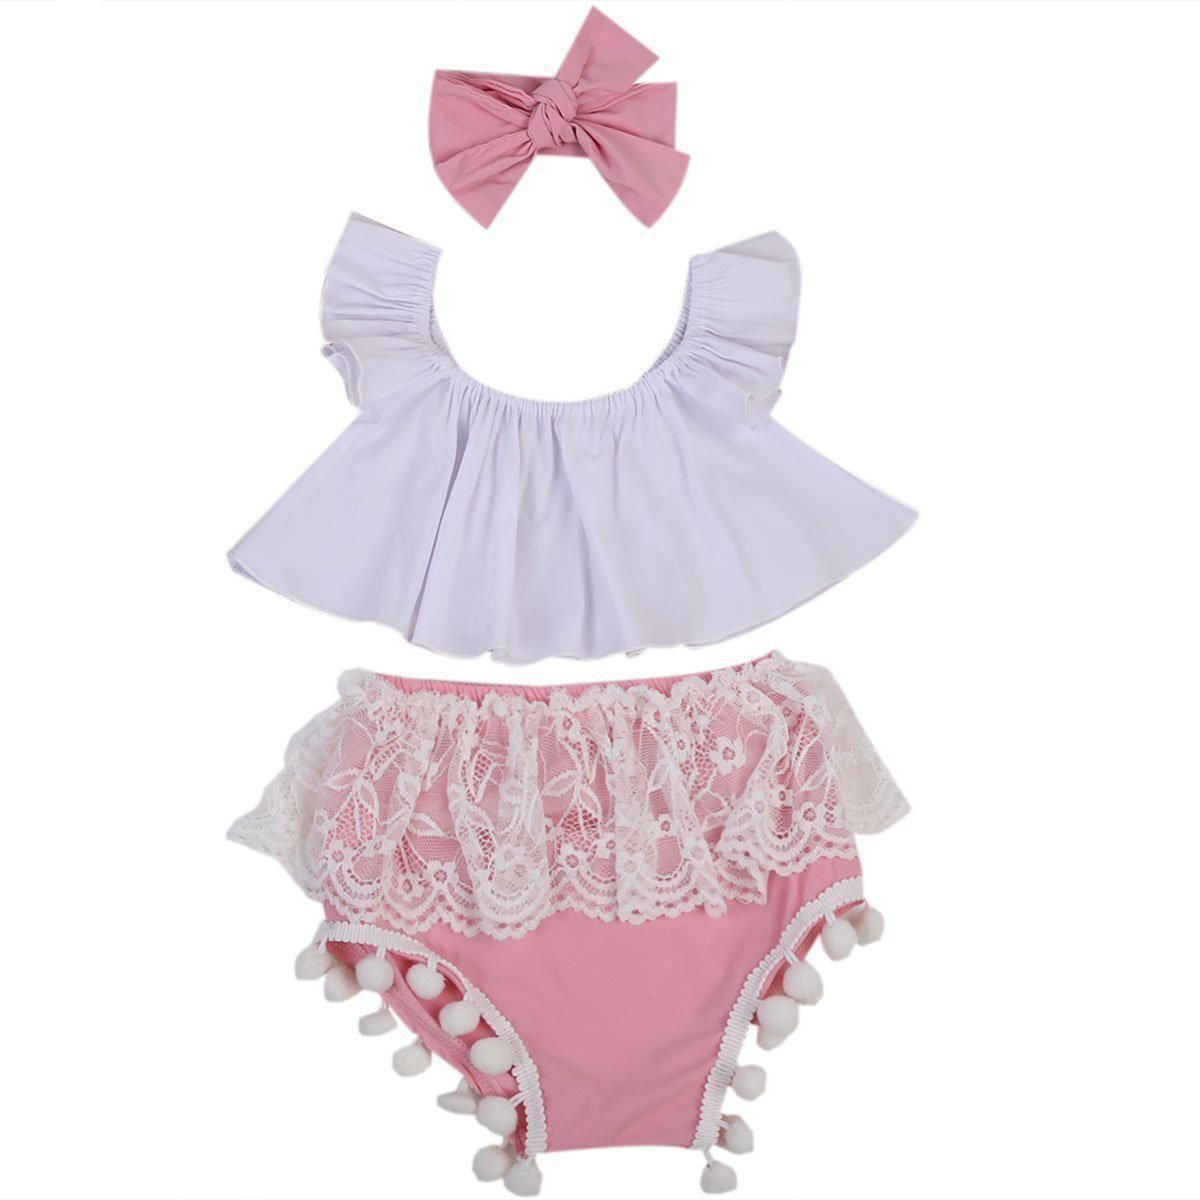 Old School Girl Baby Outfit Cute newborn baby girl, Girl